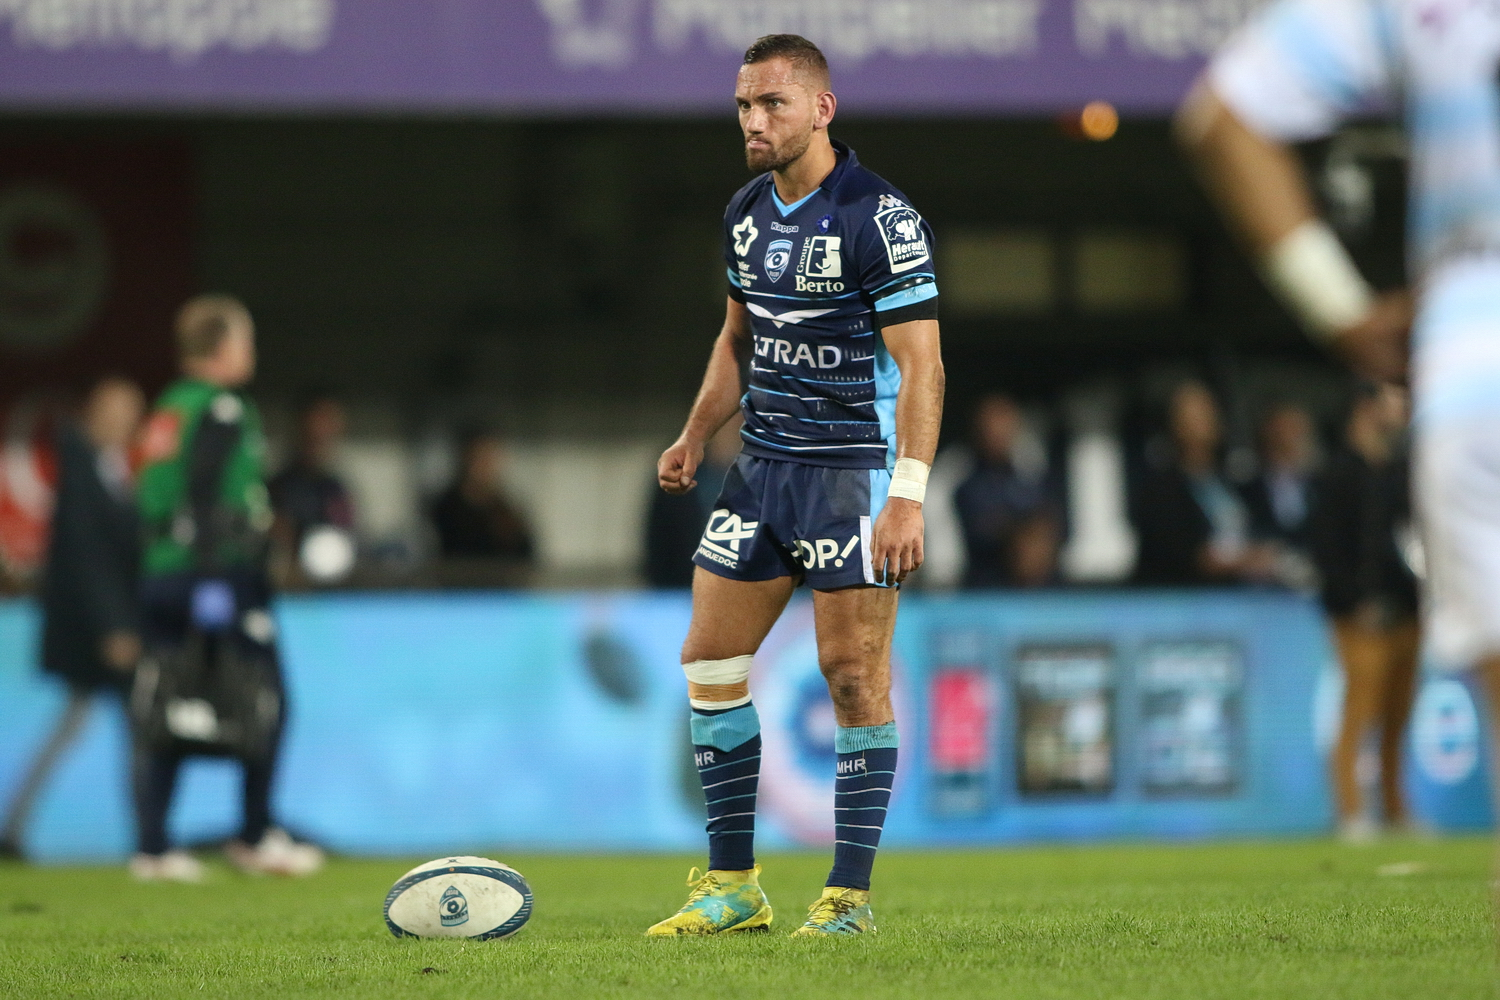 Rugby - Top 14 - Top 14: Agen-Montpellier en direct